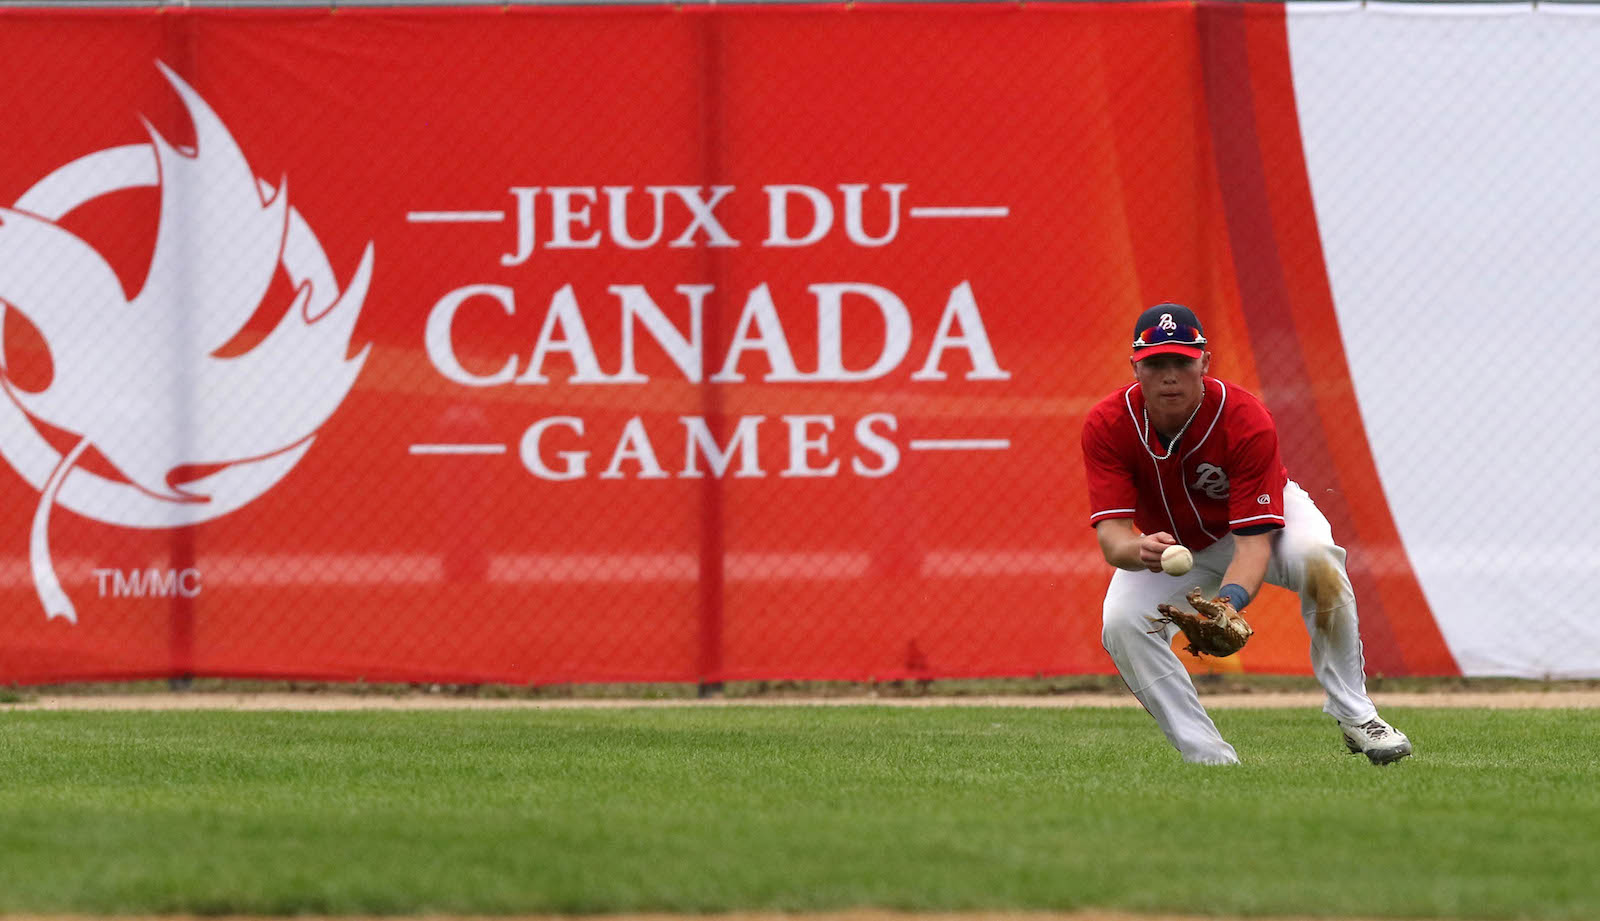 Athlete age eligibility rules established for 2022 Canada Games Baseball Competition